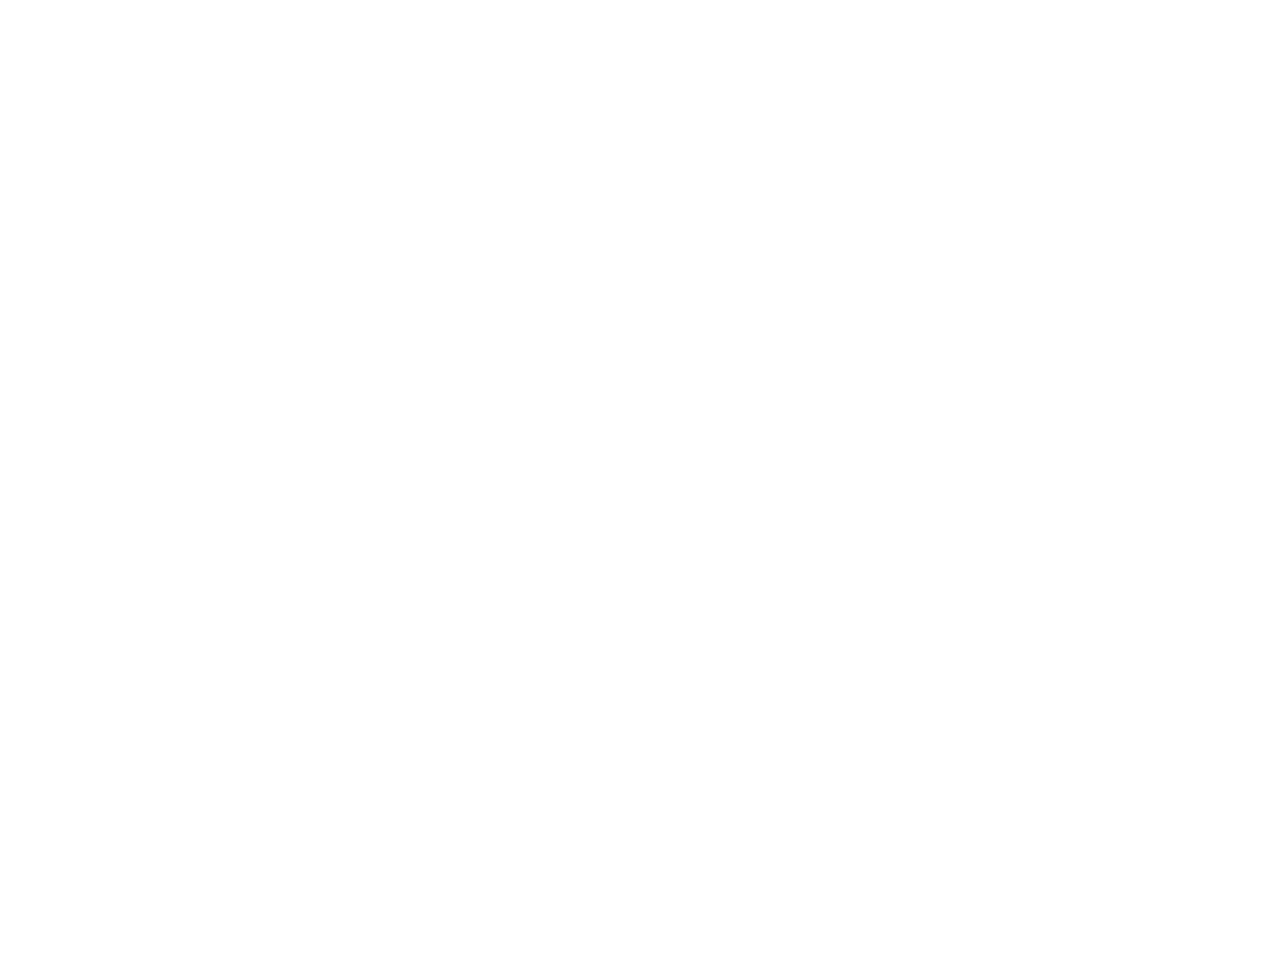 Exercises to loss weight — MyFitnessPal.com